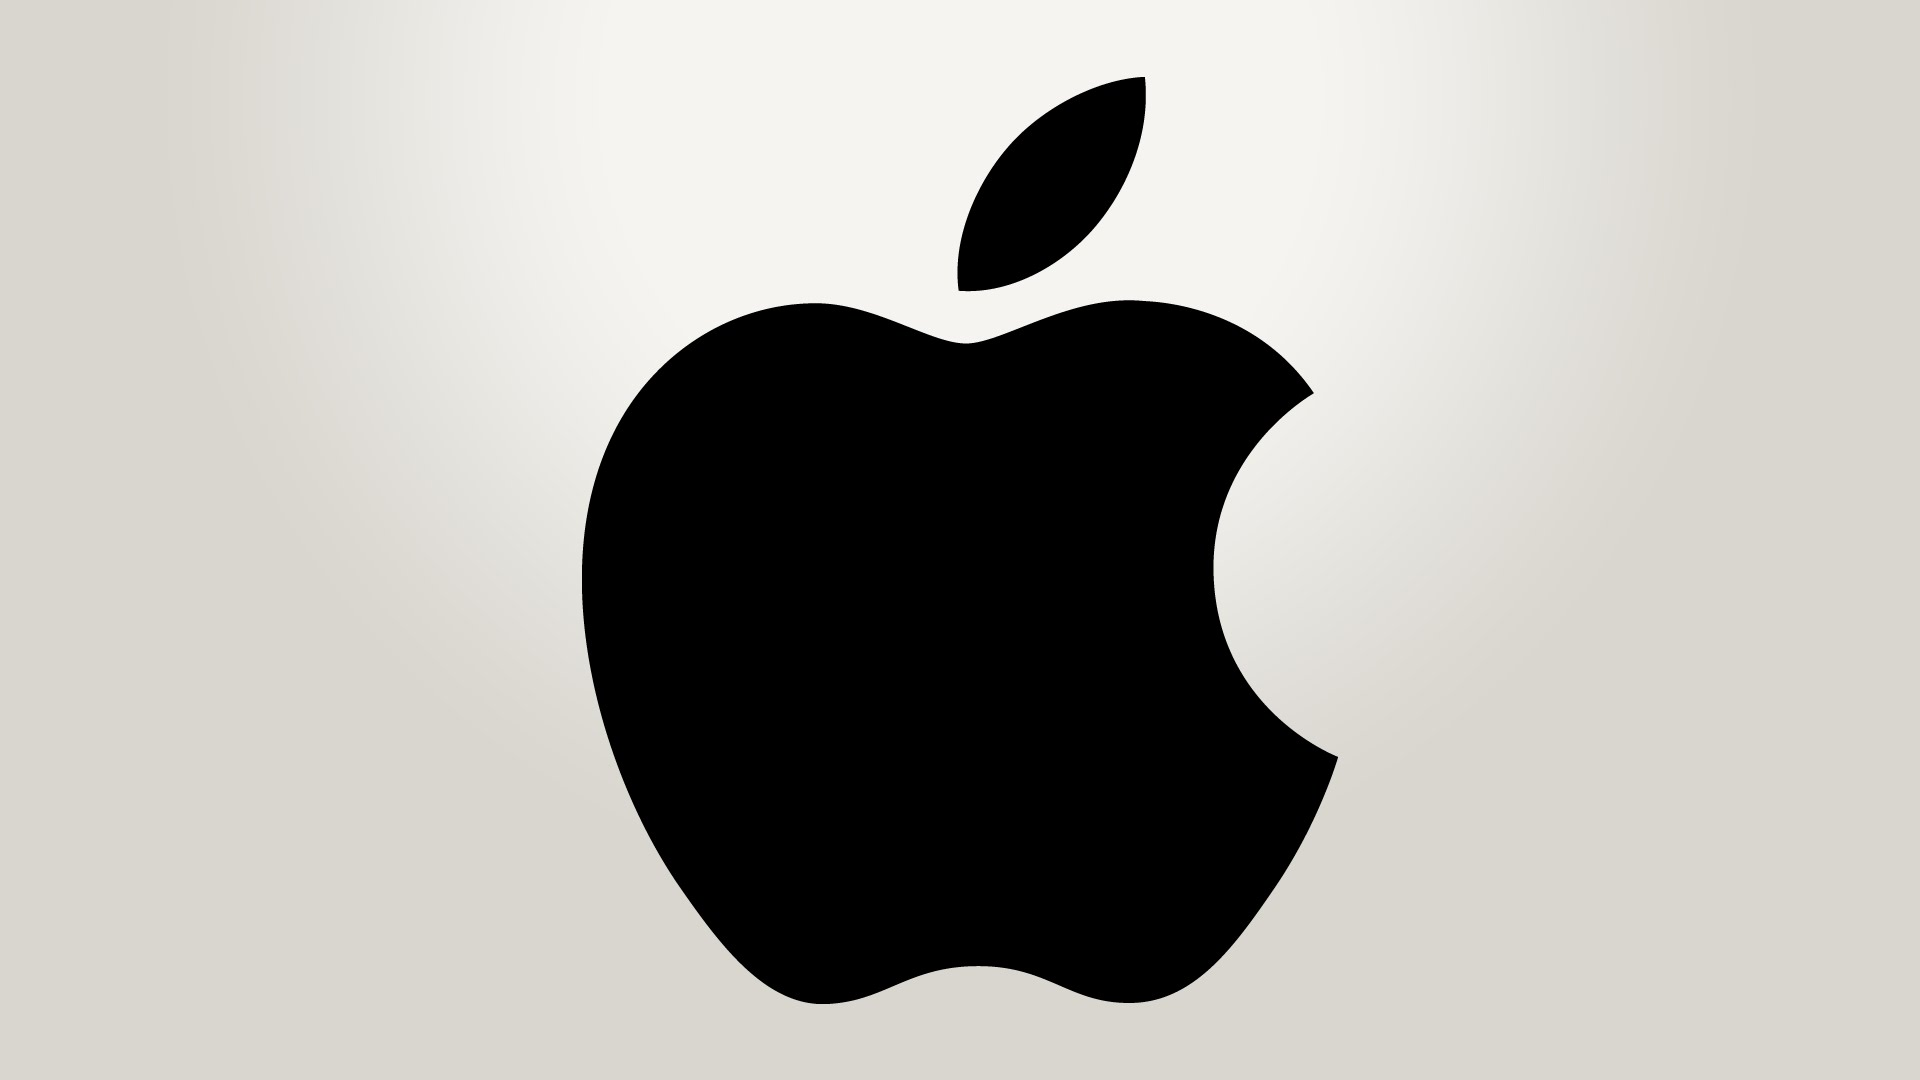 Apple Assume Specialisti Tecnici Per Gli Apple Stores In Tutta Italia